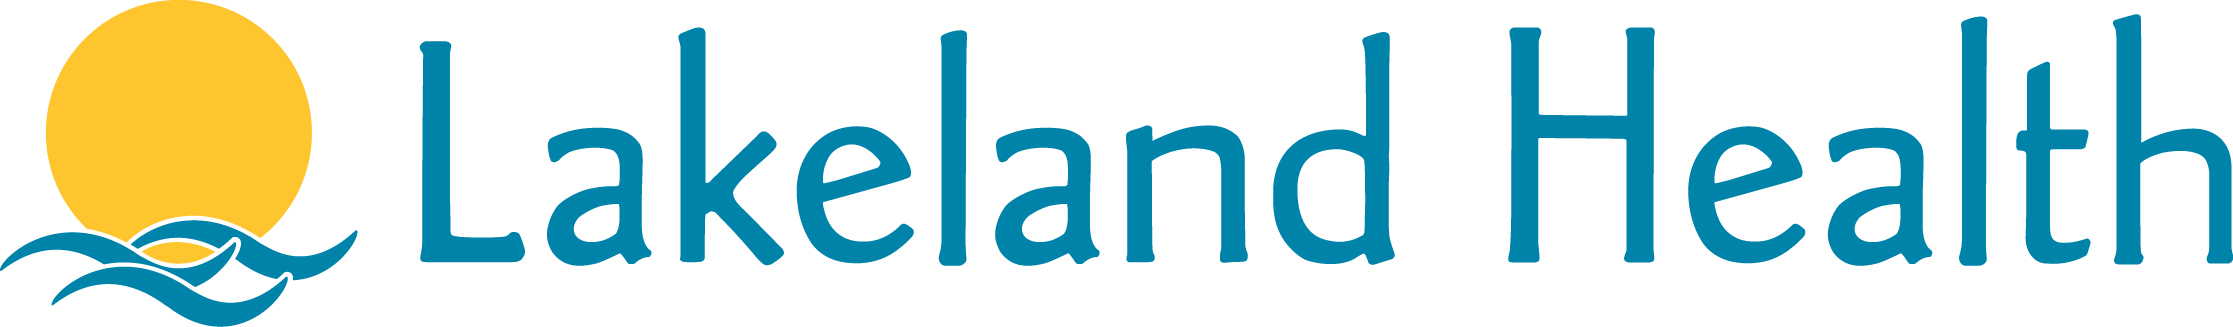 LakelandHealth-2C-Logo